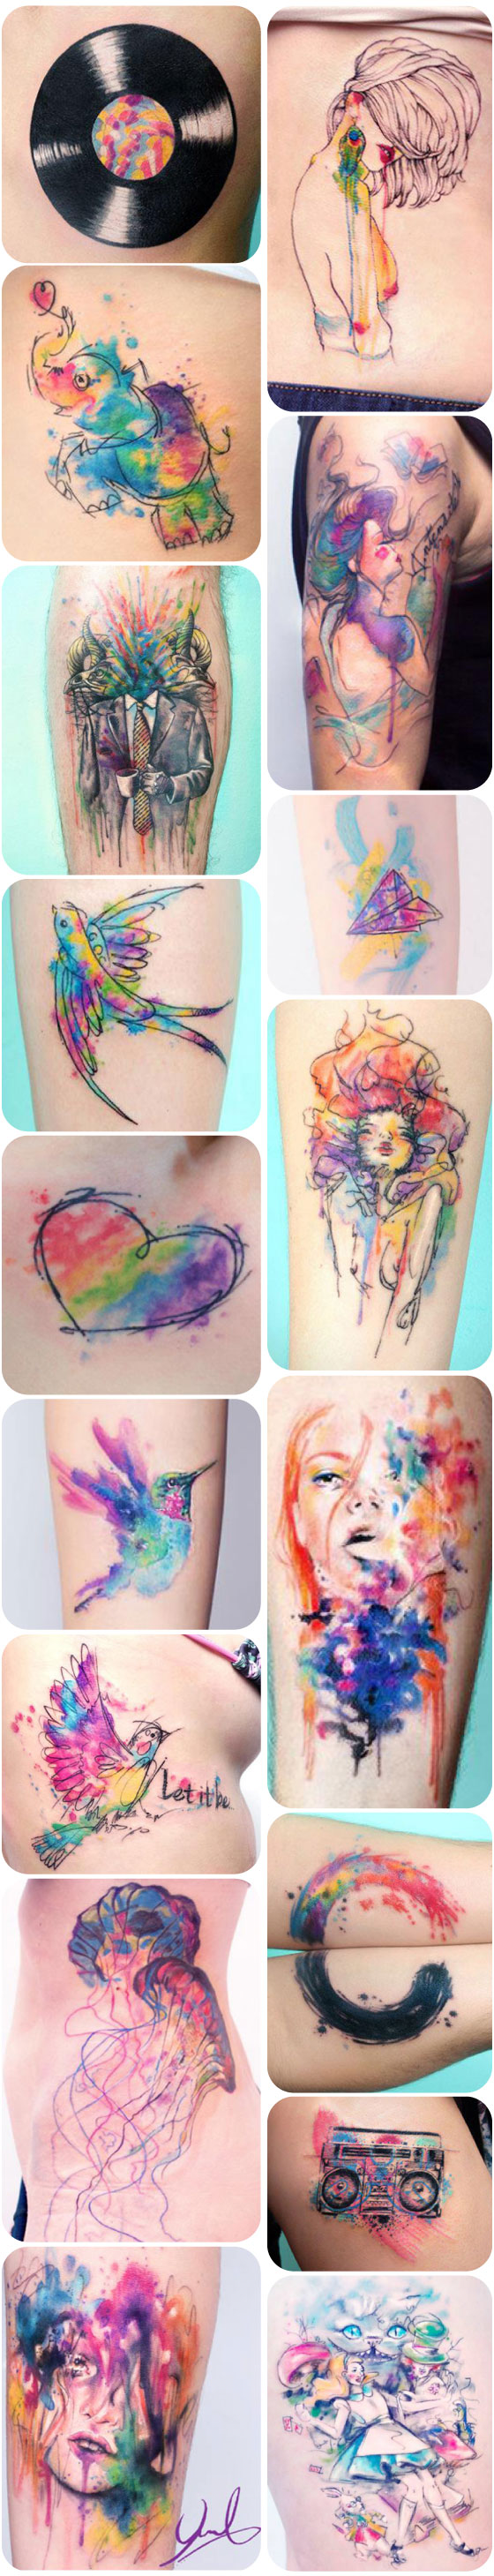 tatuagem-tattoo-candelaria-carballo-aquarela-ink-watercolor